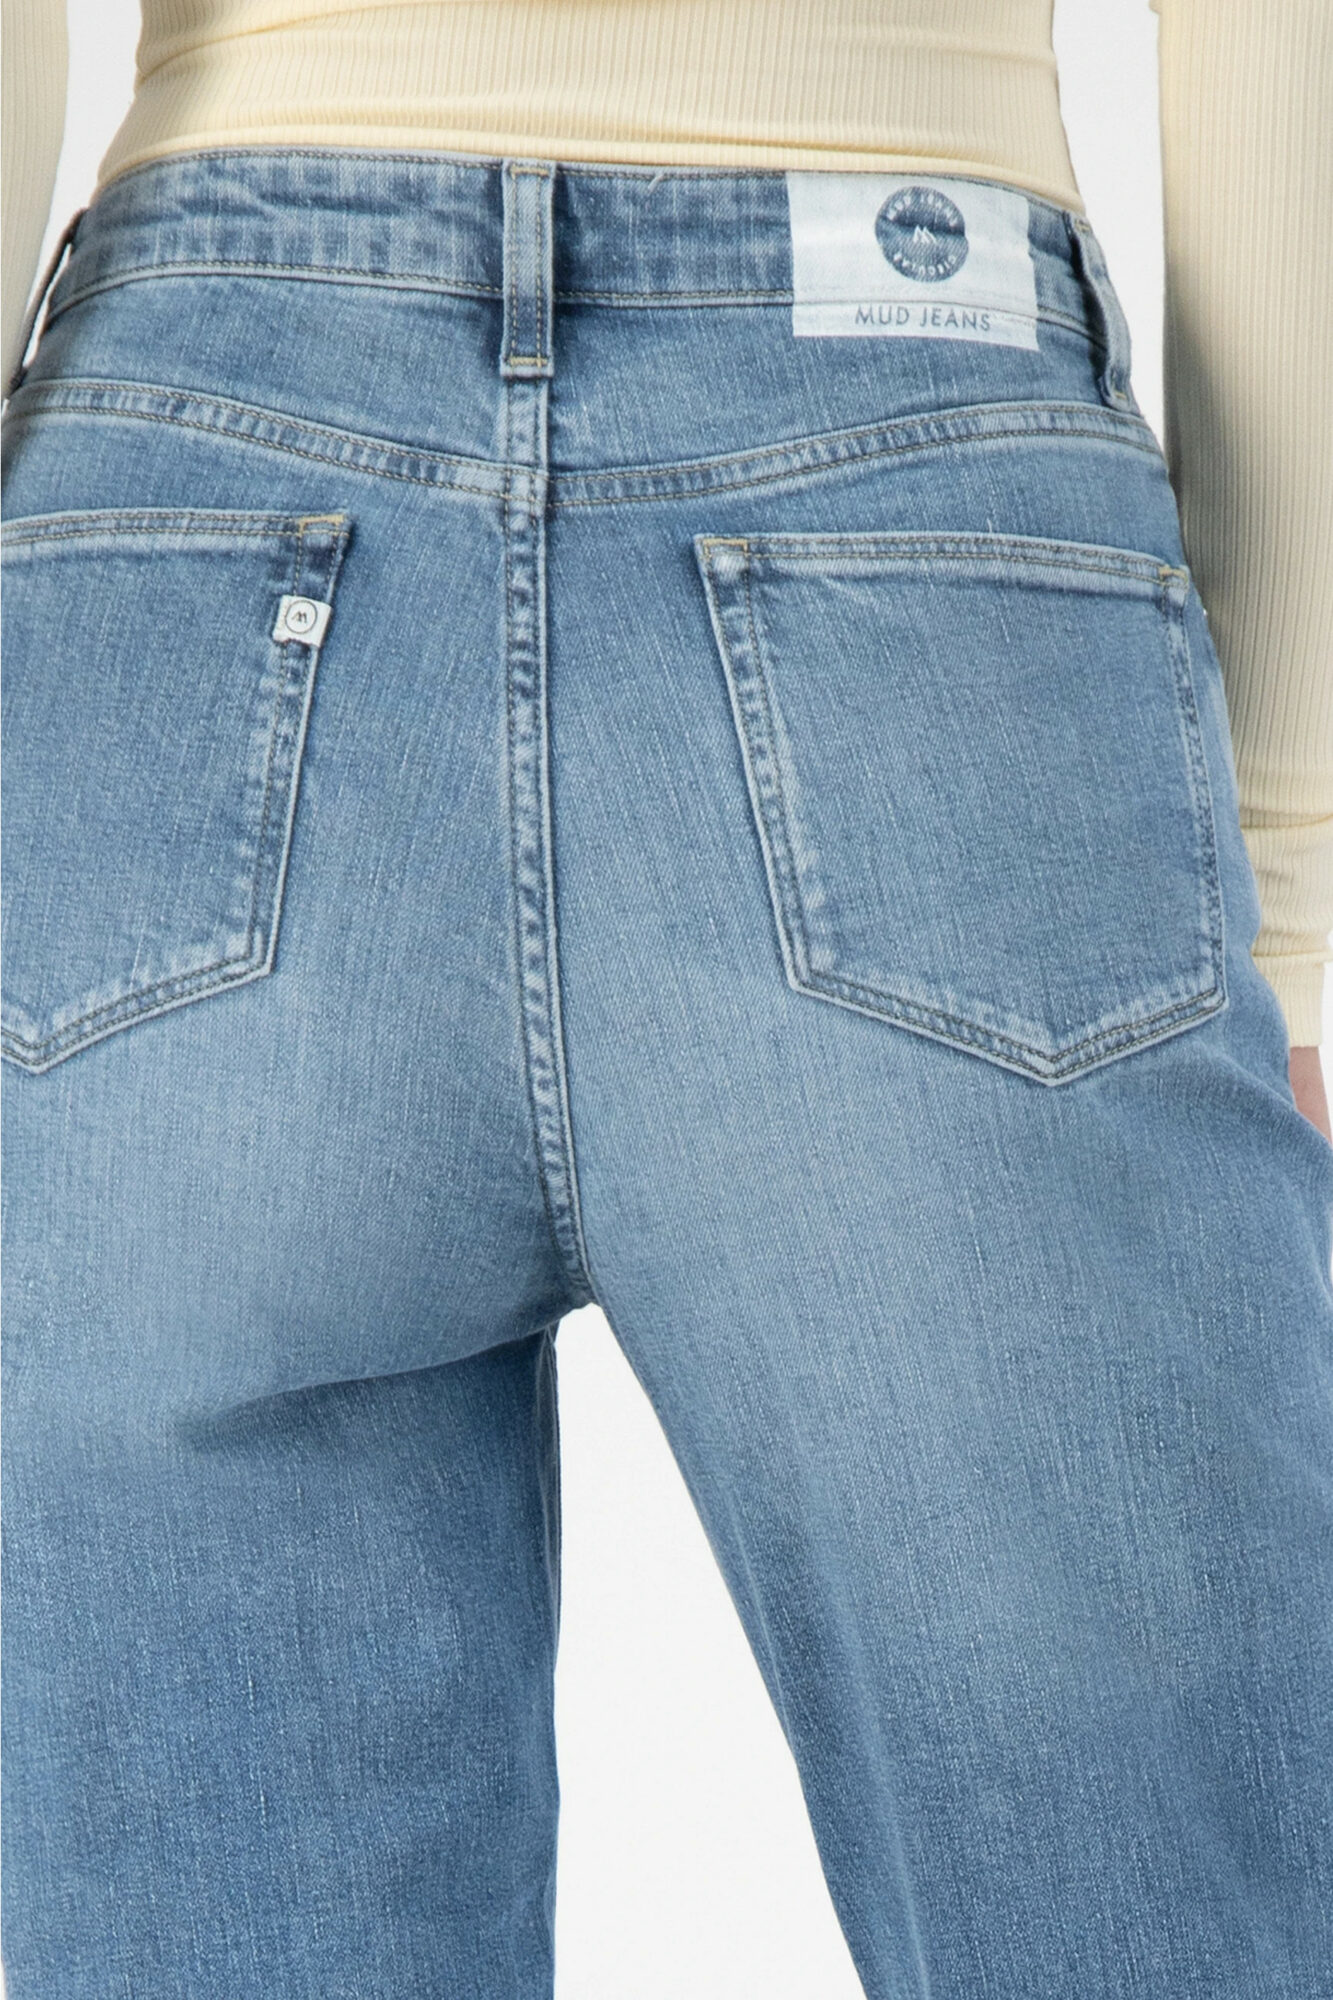 Mud Jeans Mams Stretch Old Stone 1